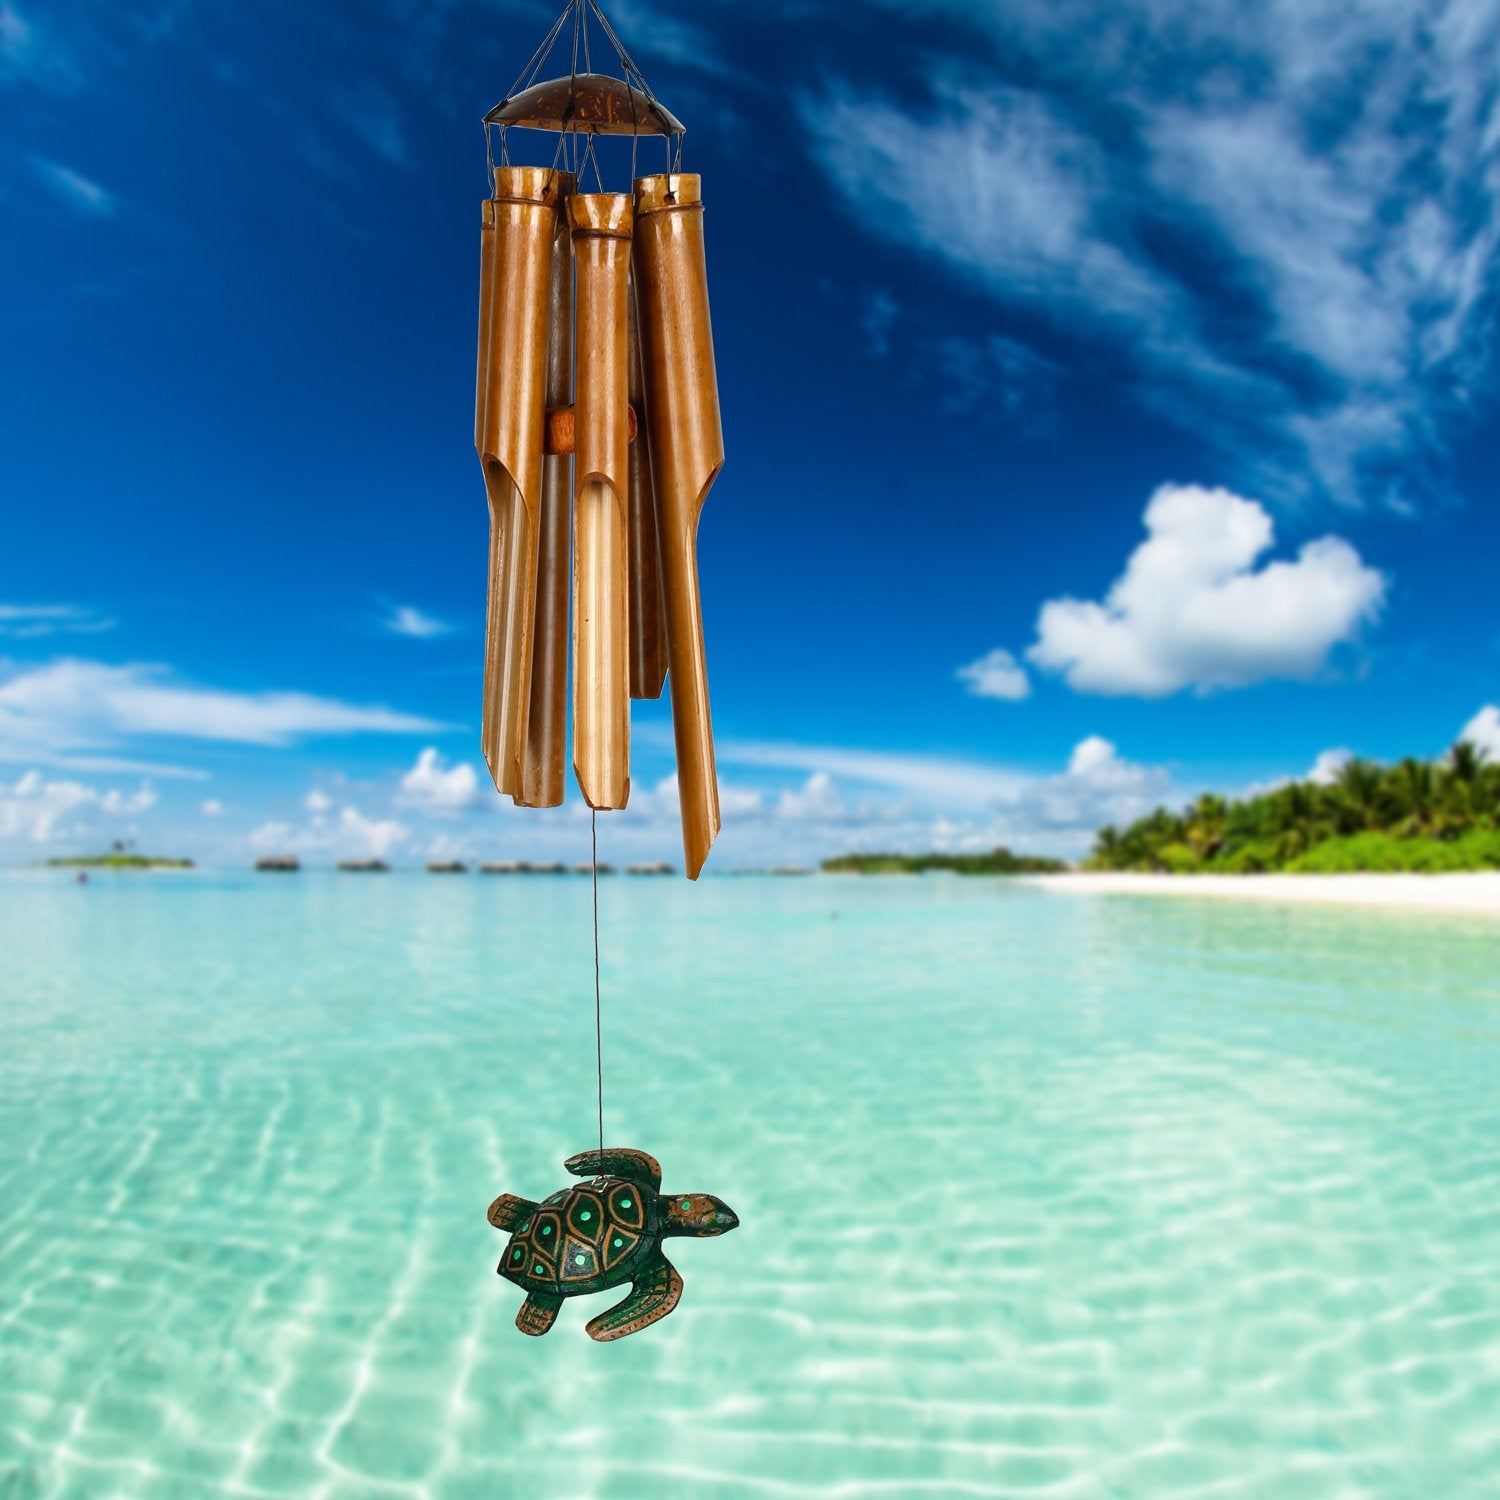 Half Coconut Bamboo Chime - Medium, Sea Turtle lifestyle image